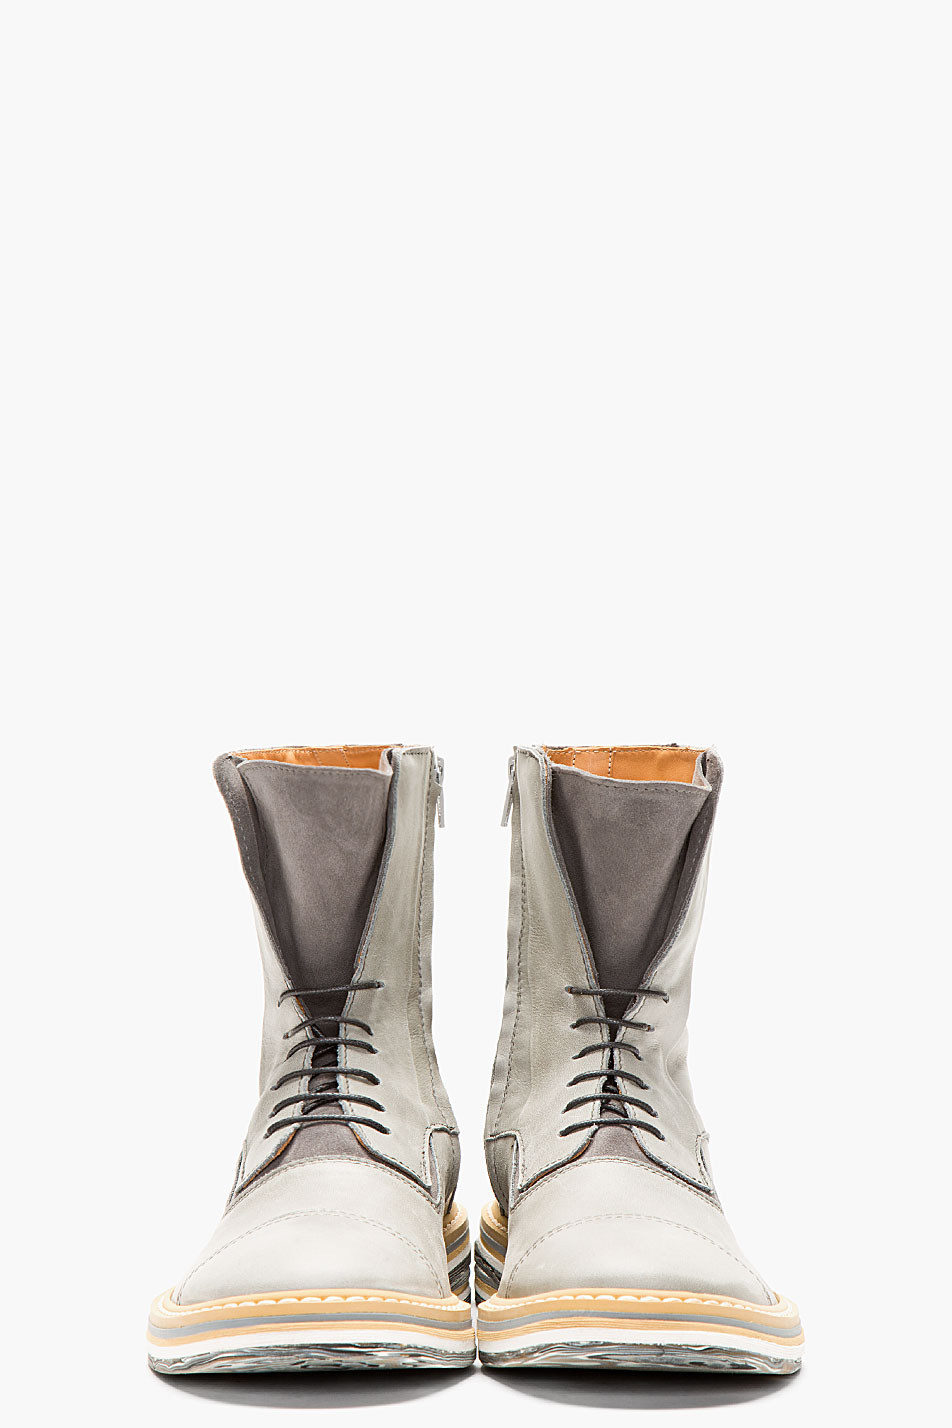 Grey Leather × Layered Sole Boots cap toe Maison Martin 2